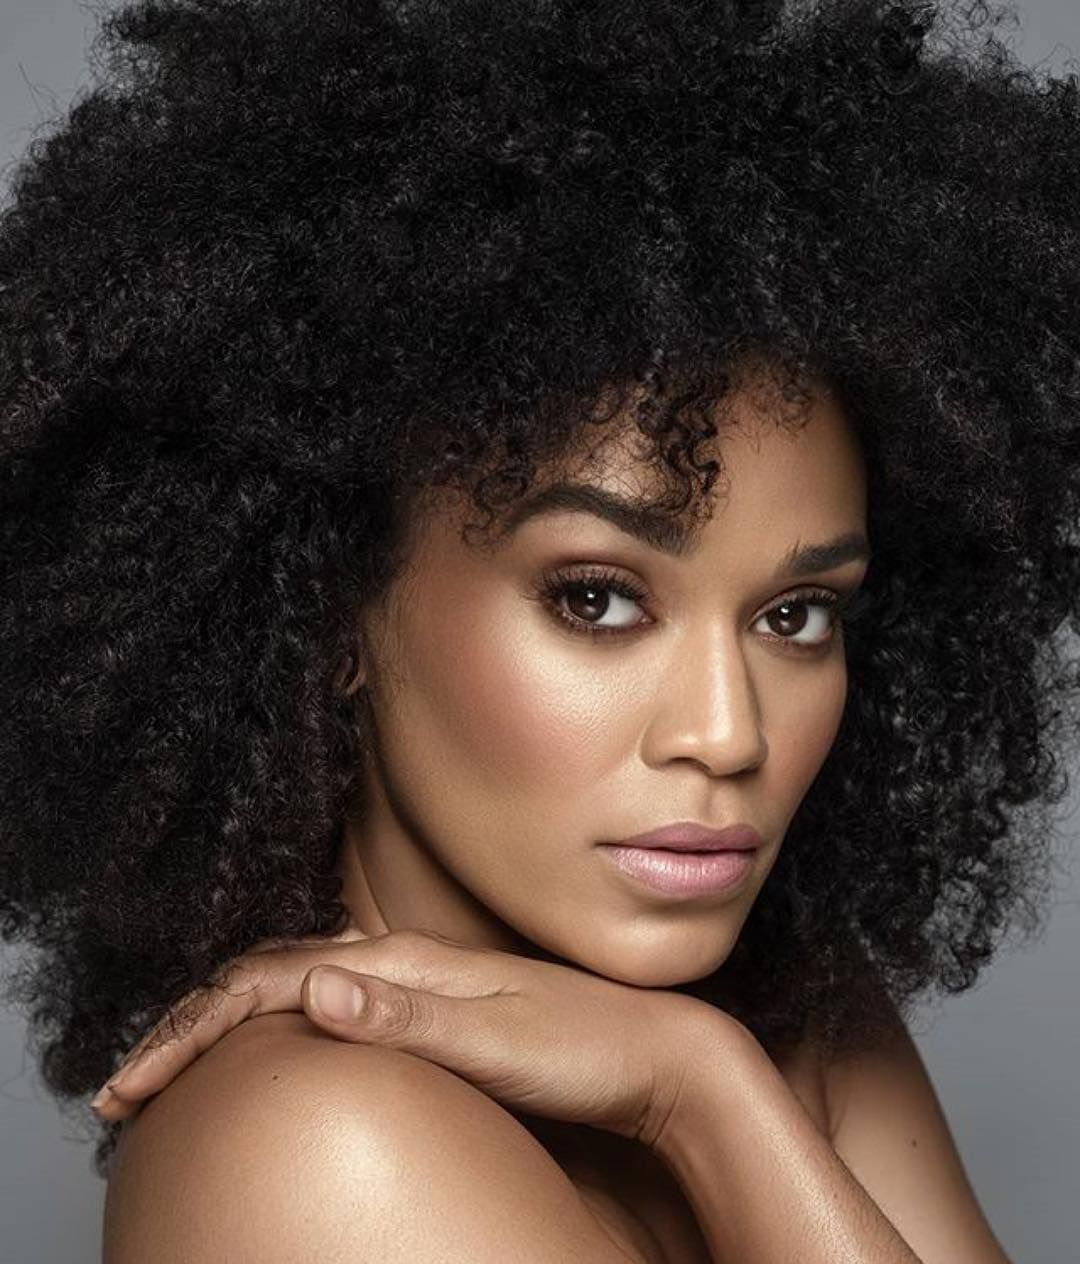 15 8k Likes 106 Comments Pearl Thusi Pearlthusi On Instagram Blackpearlmagic Repost Island Afro Hairstyles Afro Textured Hair Natural Hair Styles